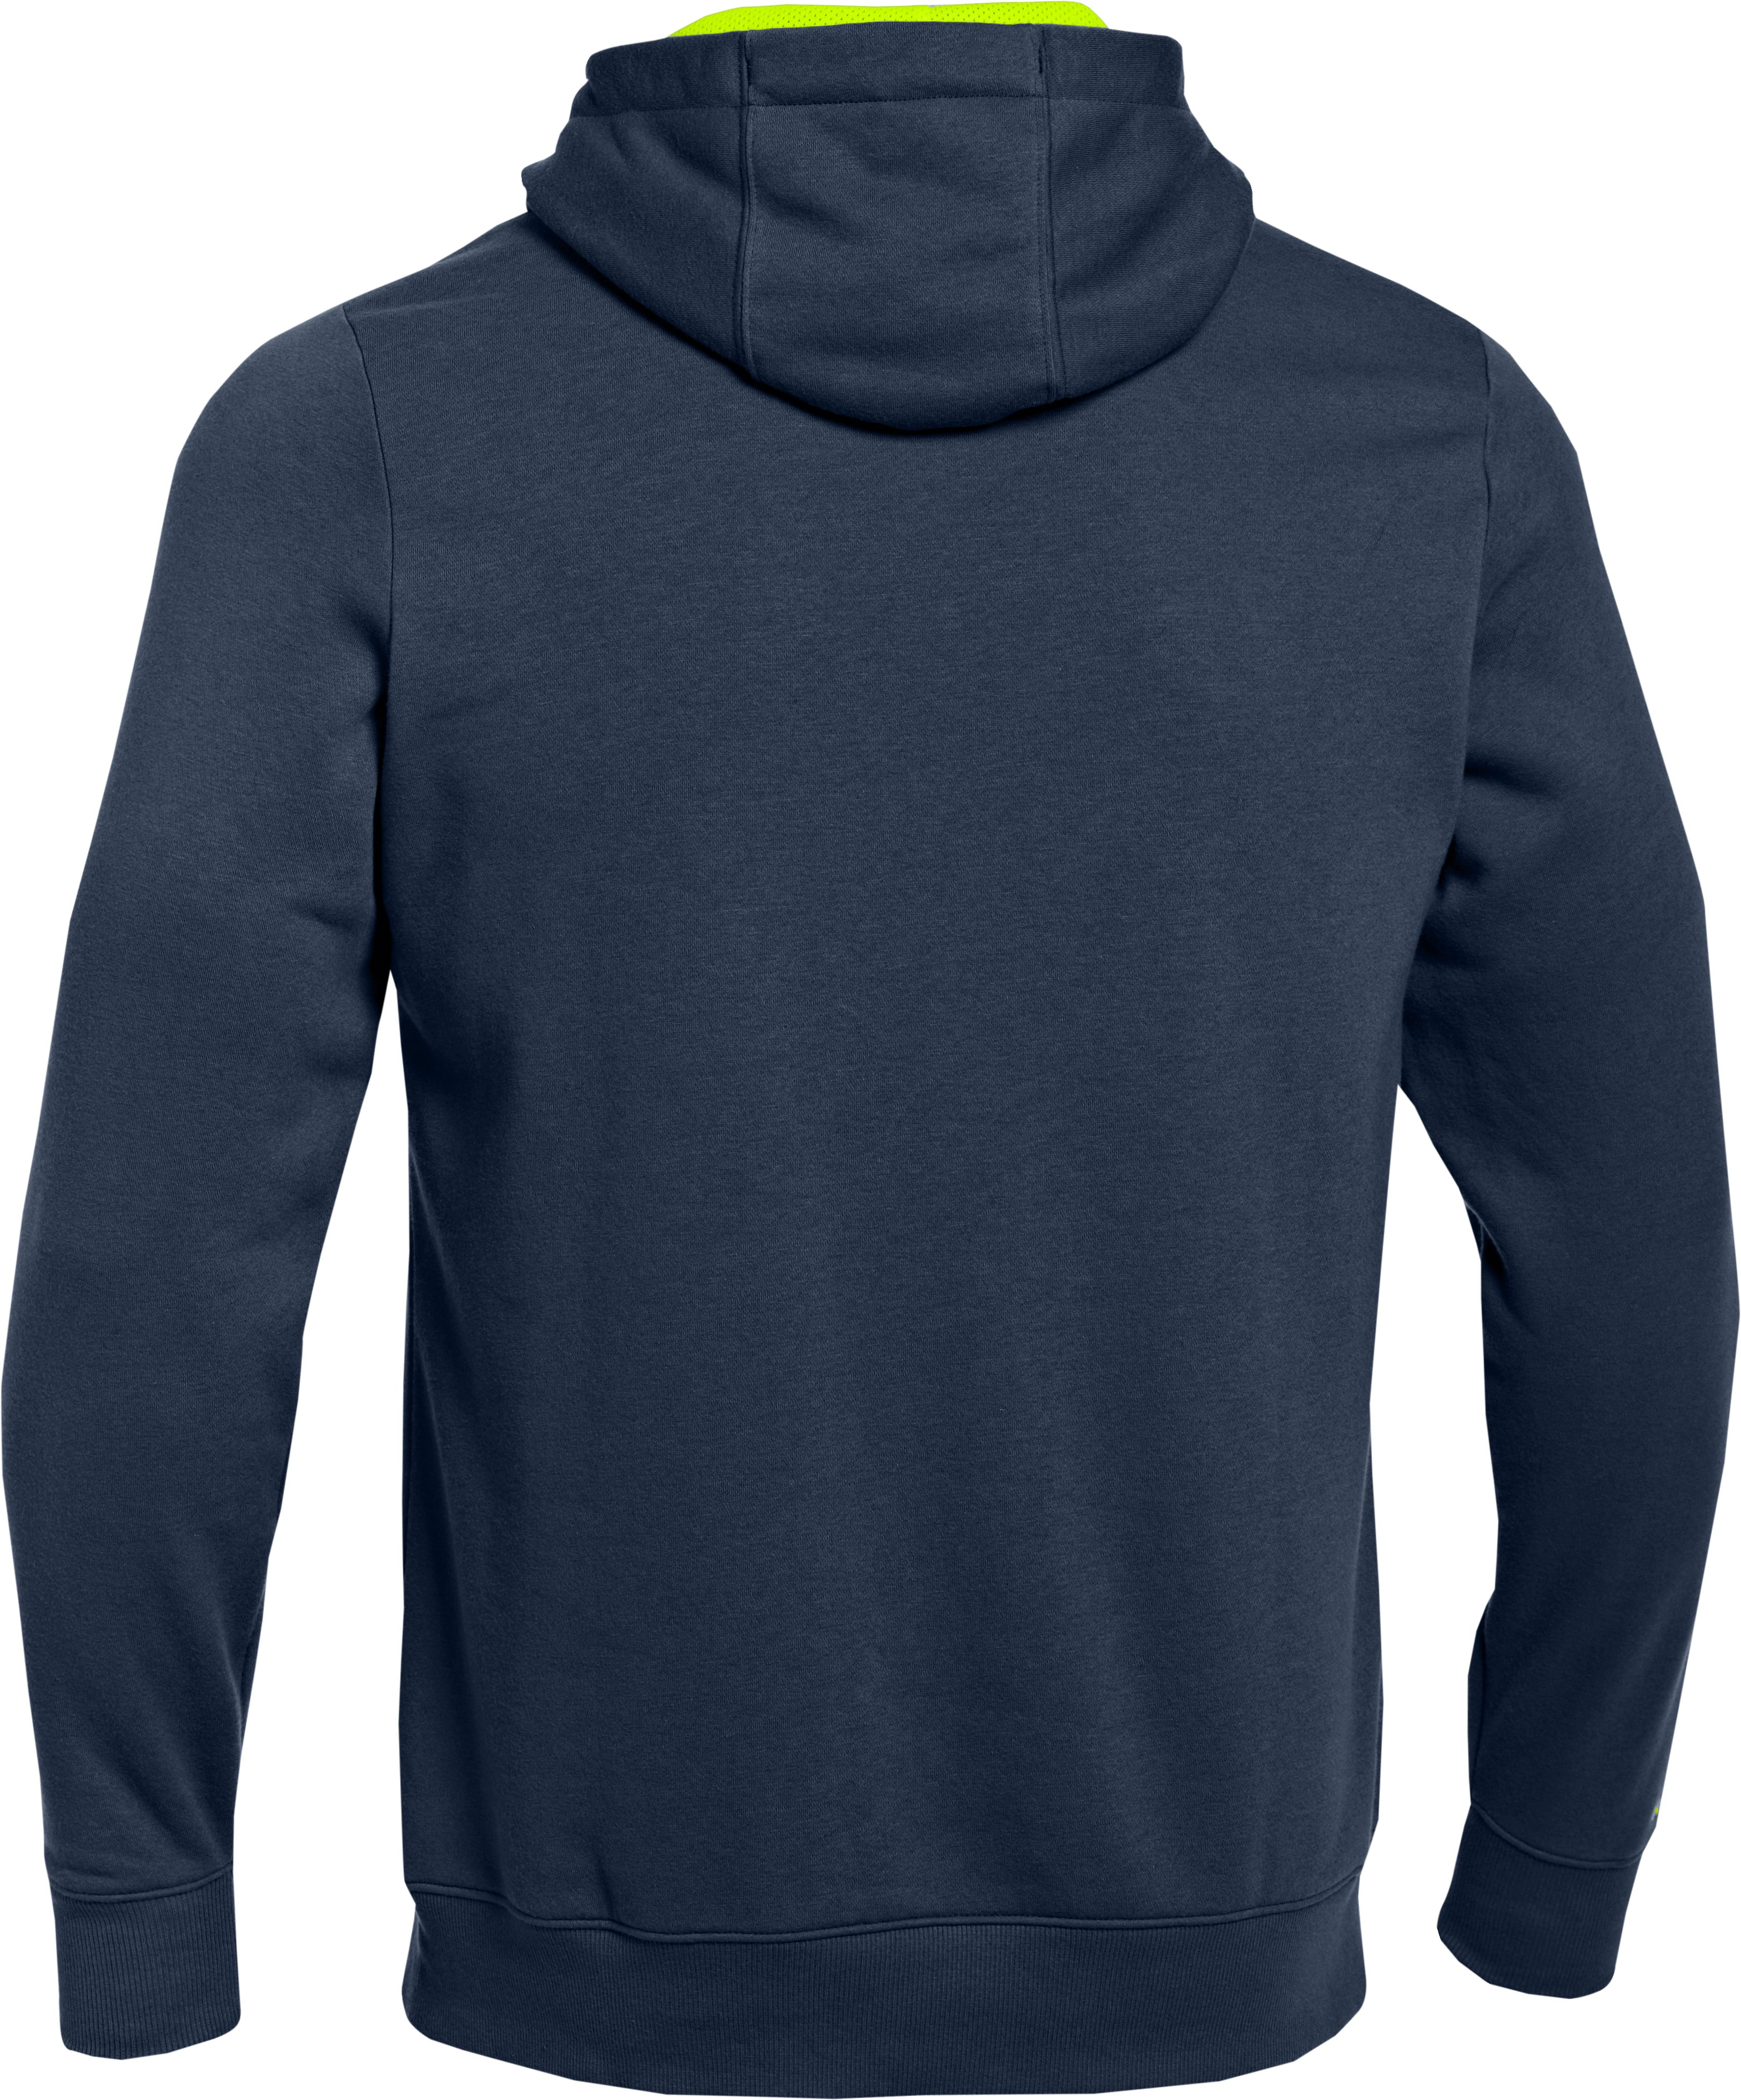 Men's Charged Cotton® Storm Battle Hoodie, Academy